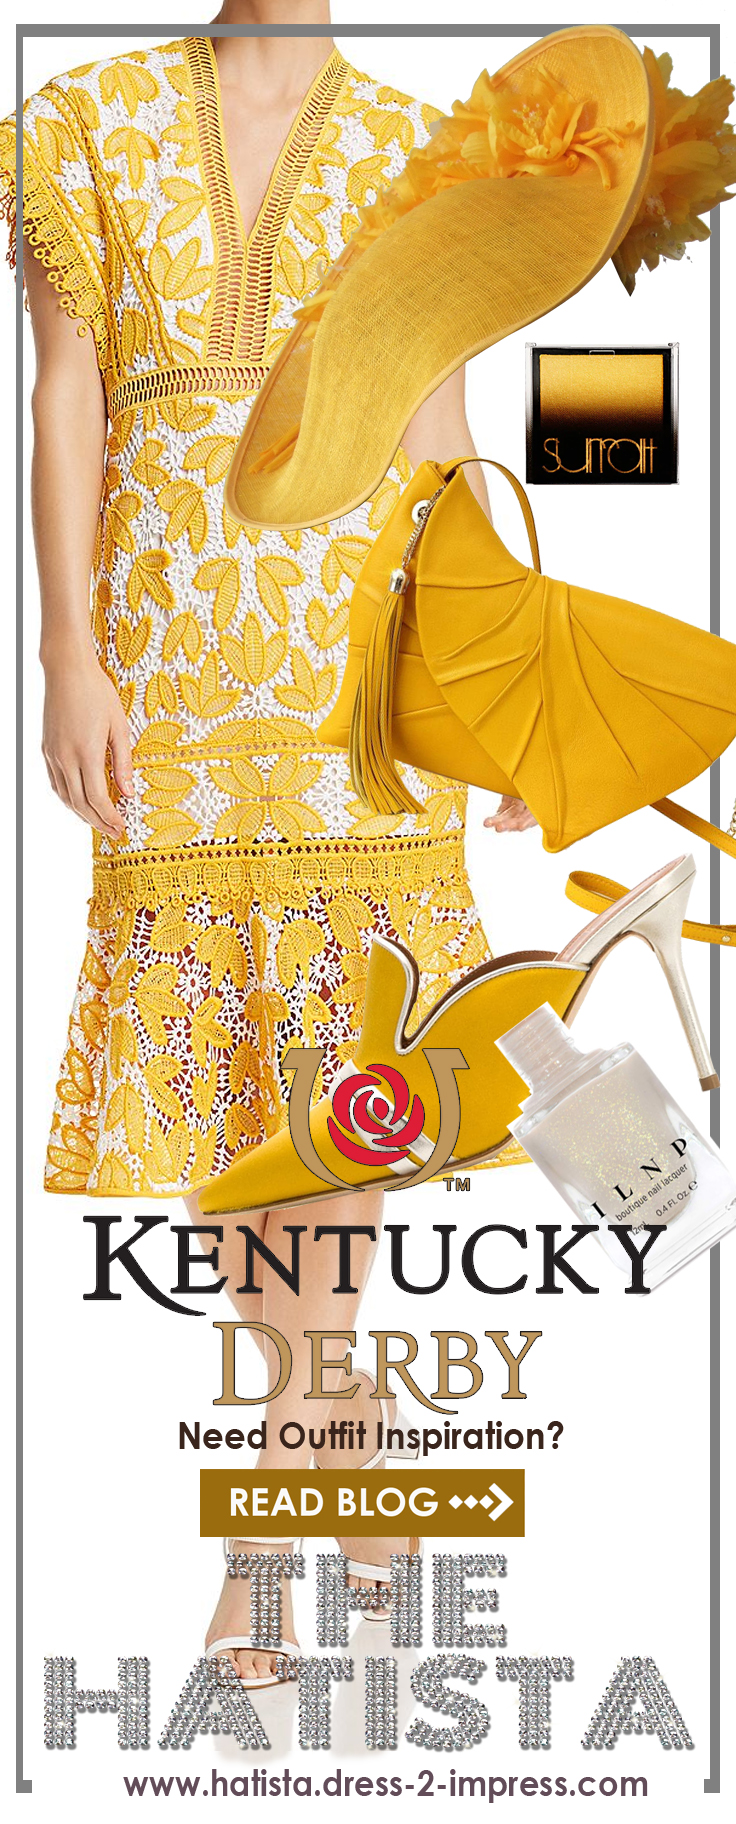 Kentucky Derby outfit ideas. Floral Dresses for the Kentucky Derby. What to wear for the Kentucky Derby 2021. What to wear to the Races. Kentucky Derby Dresses 2021. Kentucky Derby Hats. #kentuckyderby #ootd #outfitideas